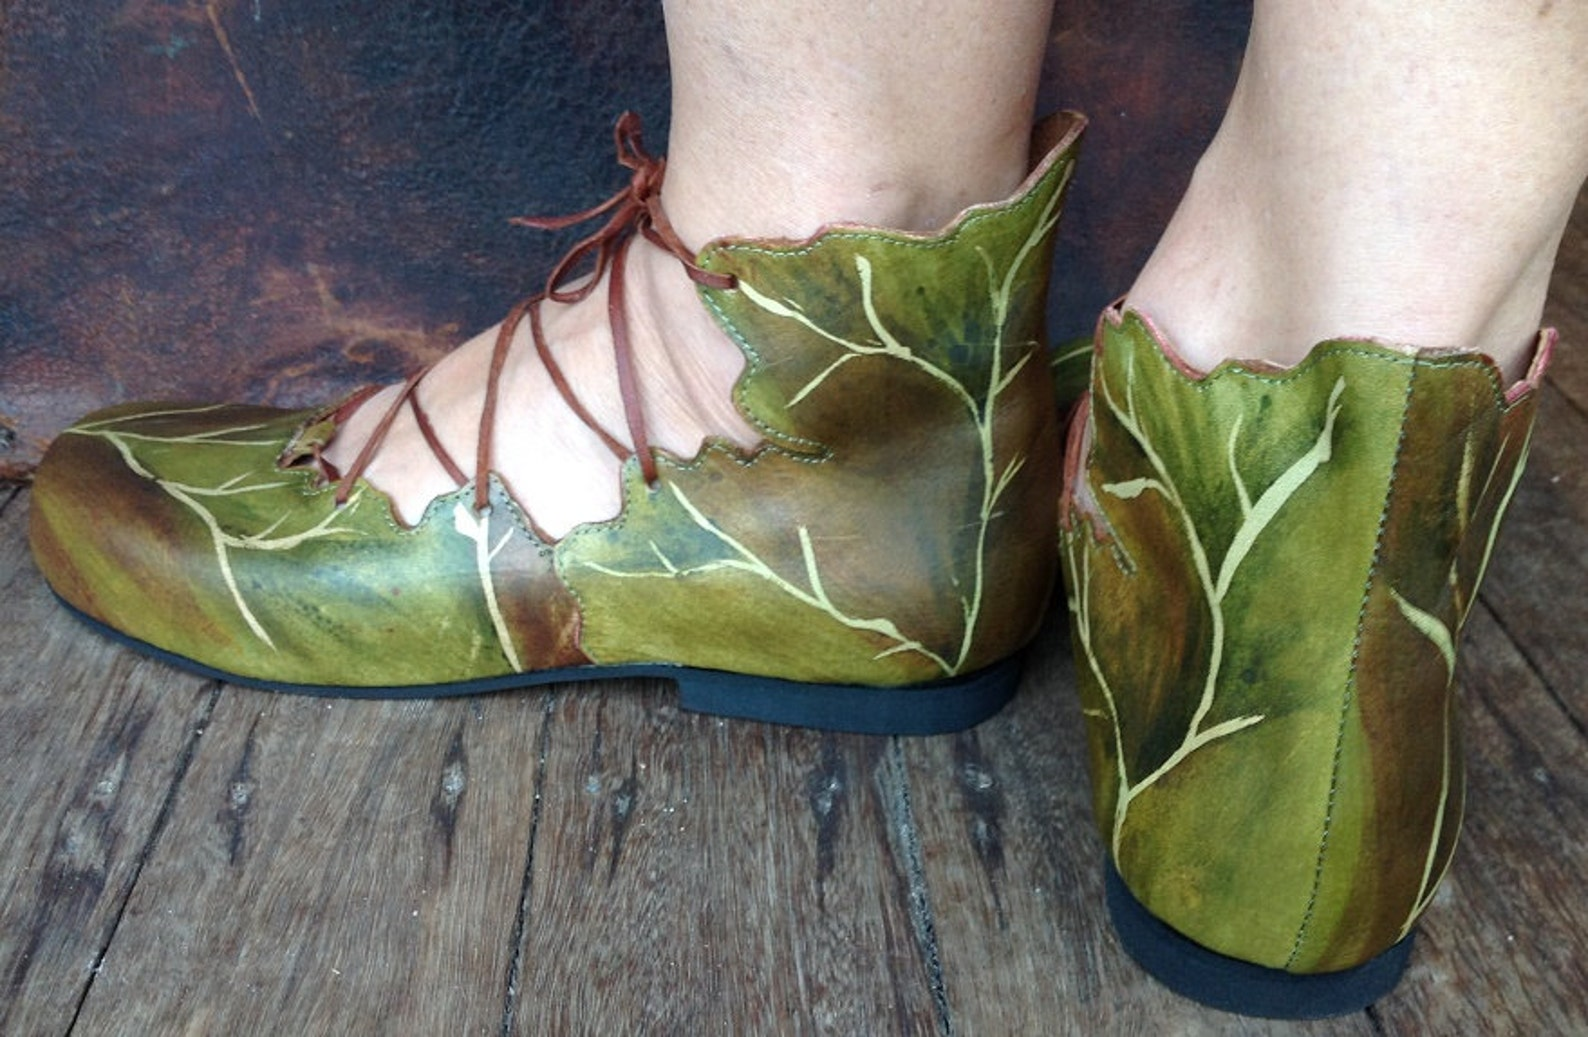 ballet pixie boots, handmade shoes, woodland shoes, elvish wedding, leaf boots,flat shoes, green shoes, ghillies, ankle boots,fa